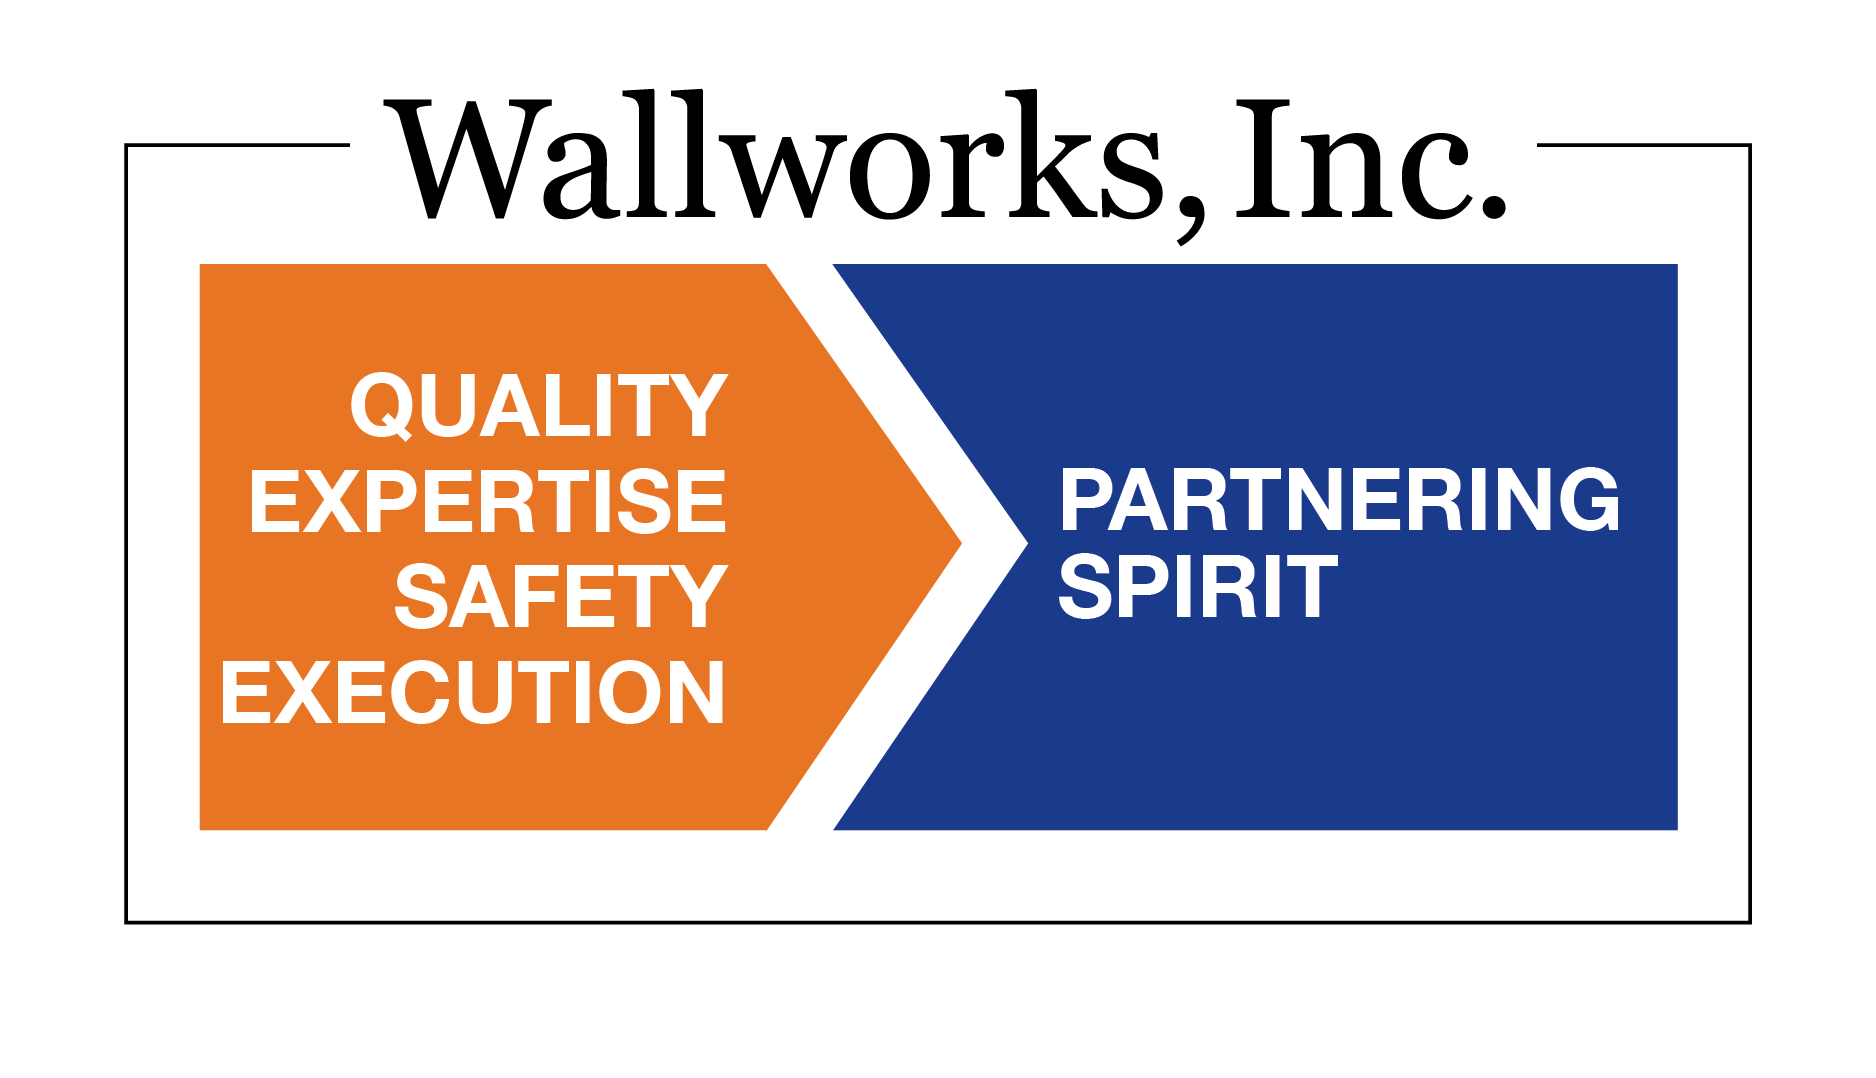 A Partnering Spirit – our Focus for 2019!